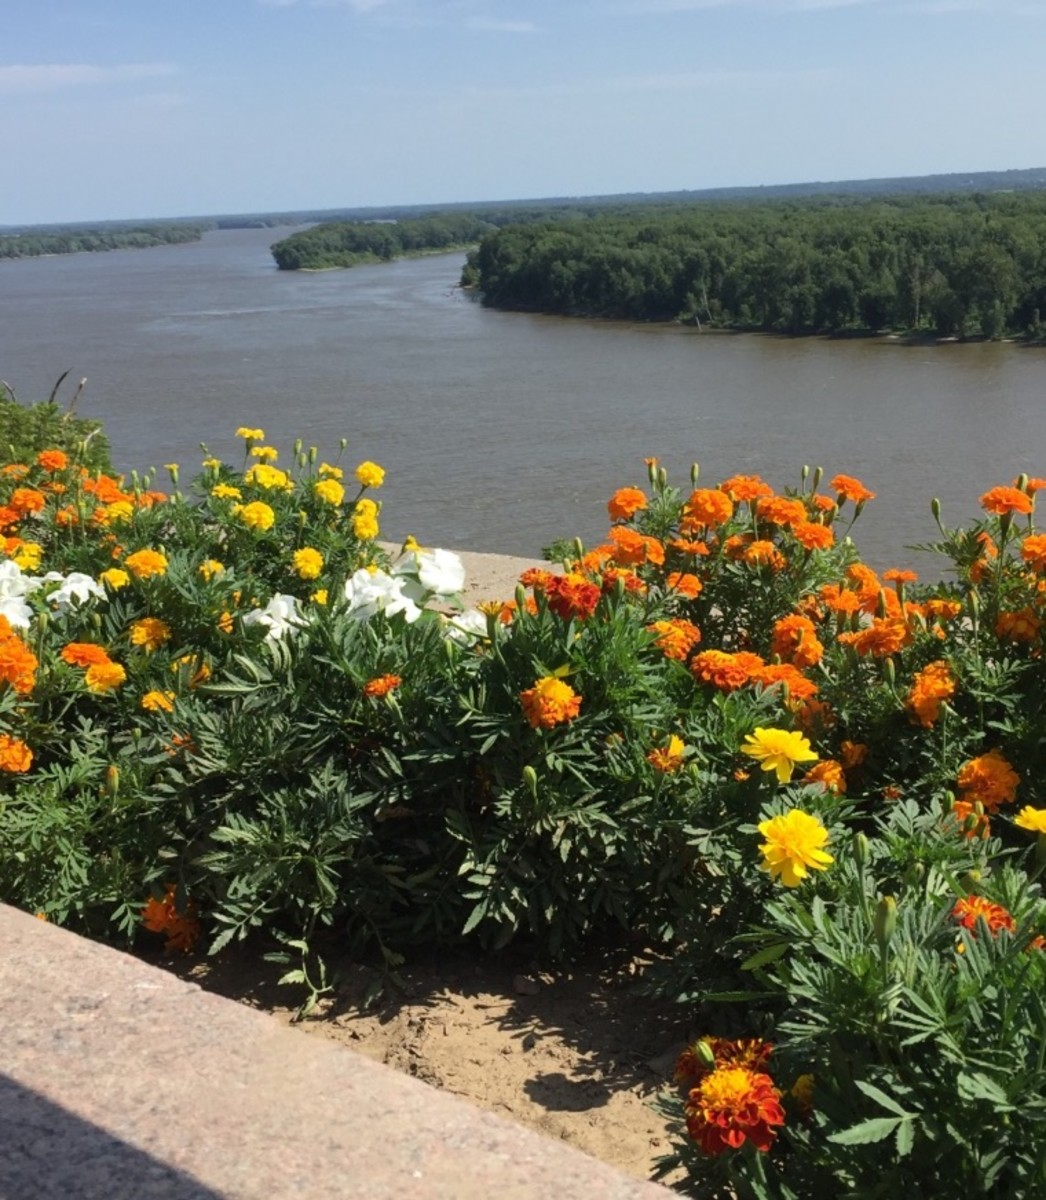 View overlooking the Mississippi from Riverview Park